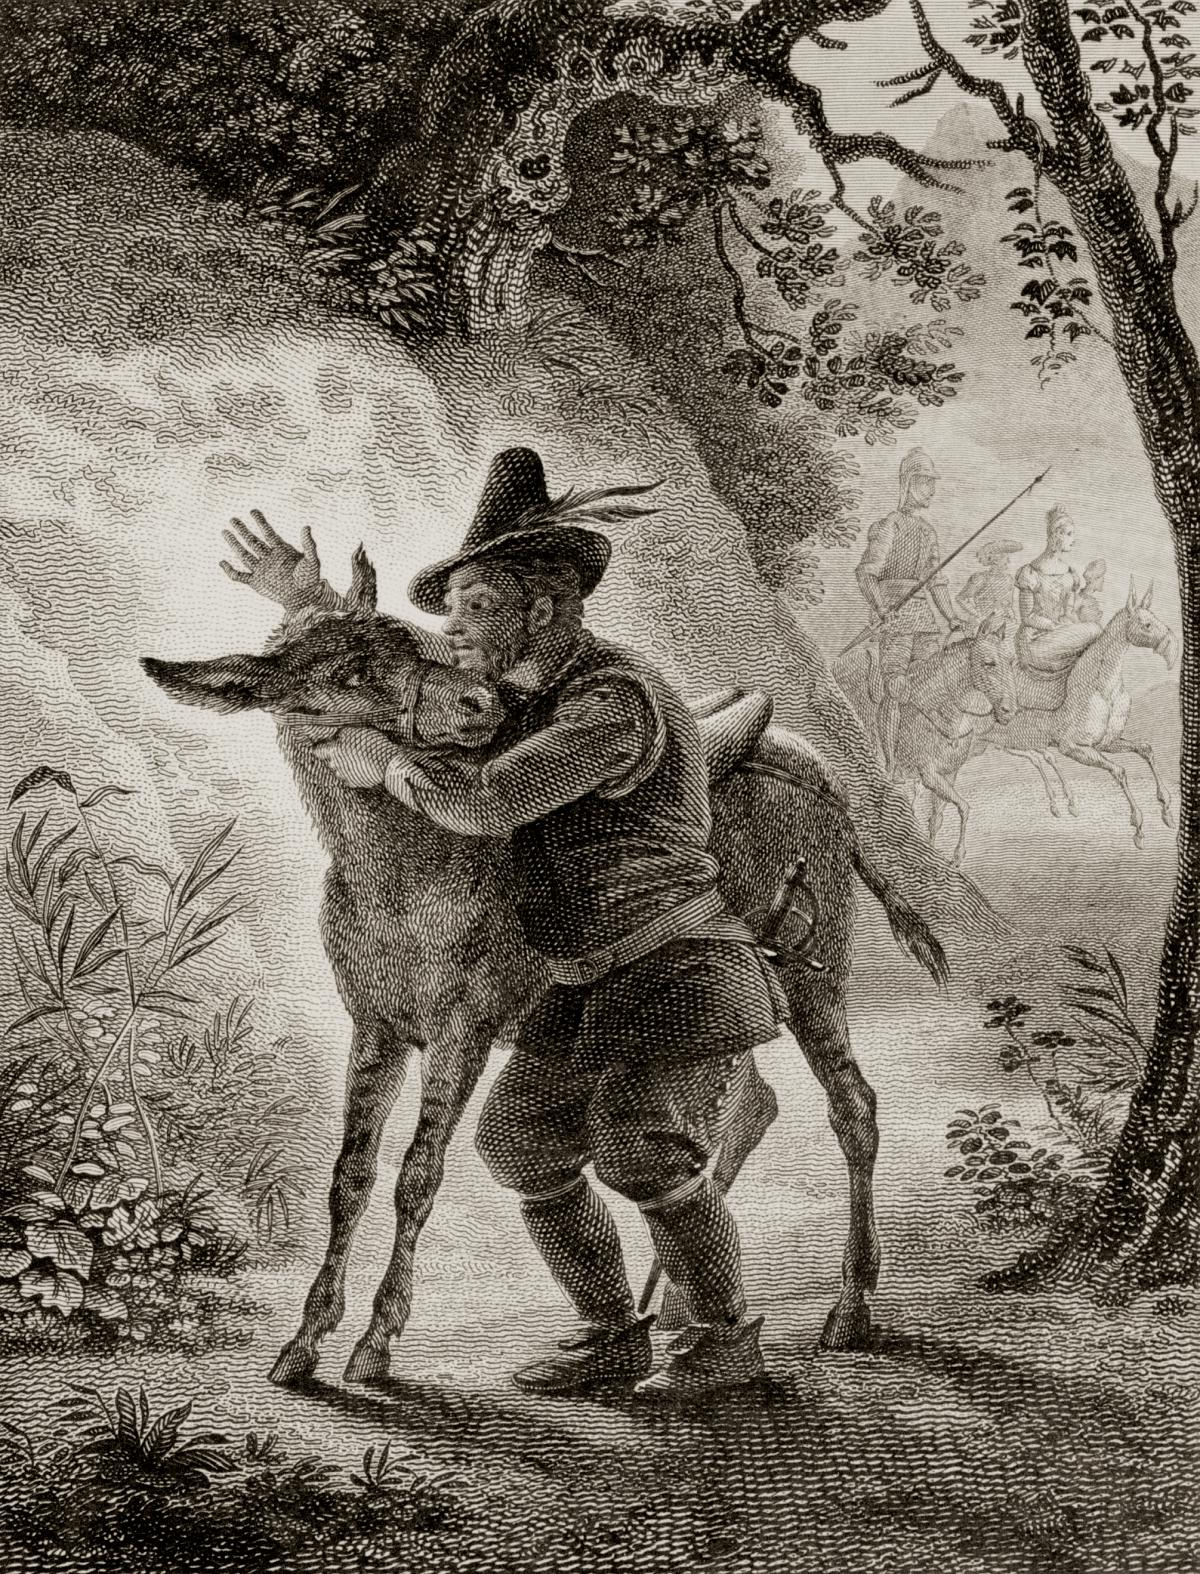 Engraving of a man embracing a donkey